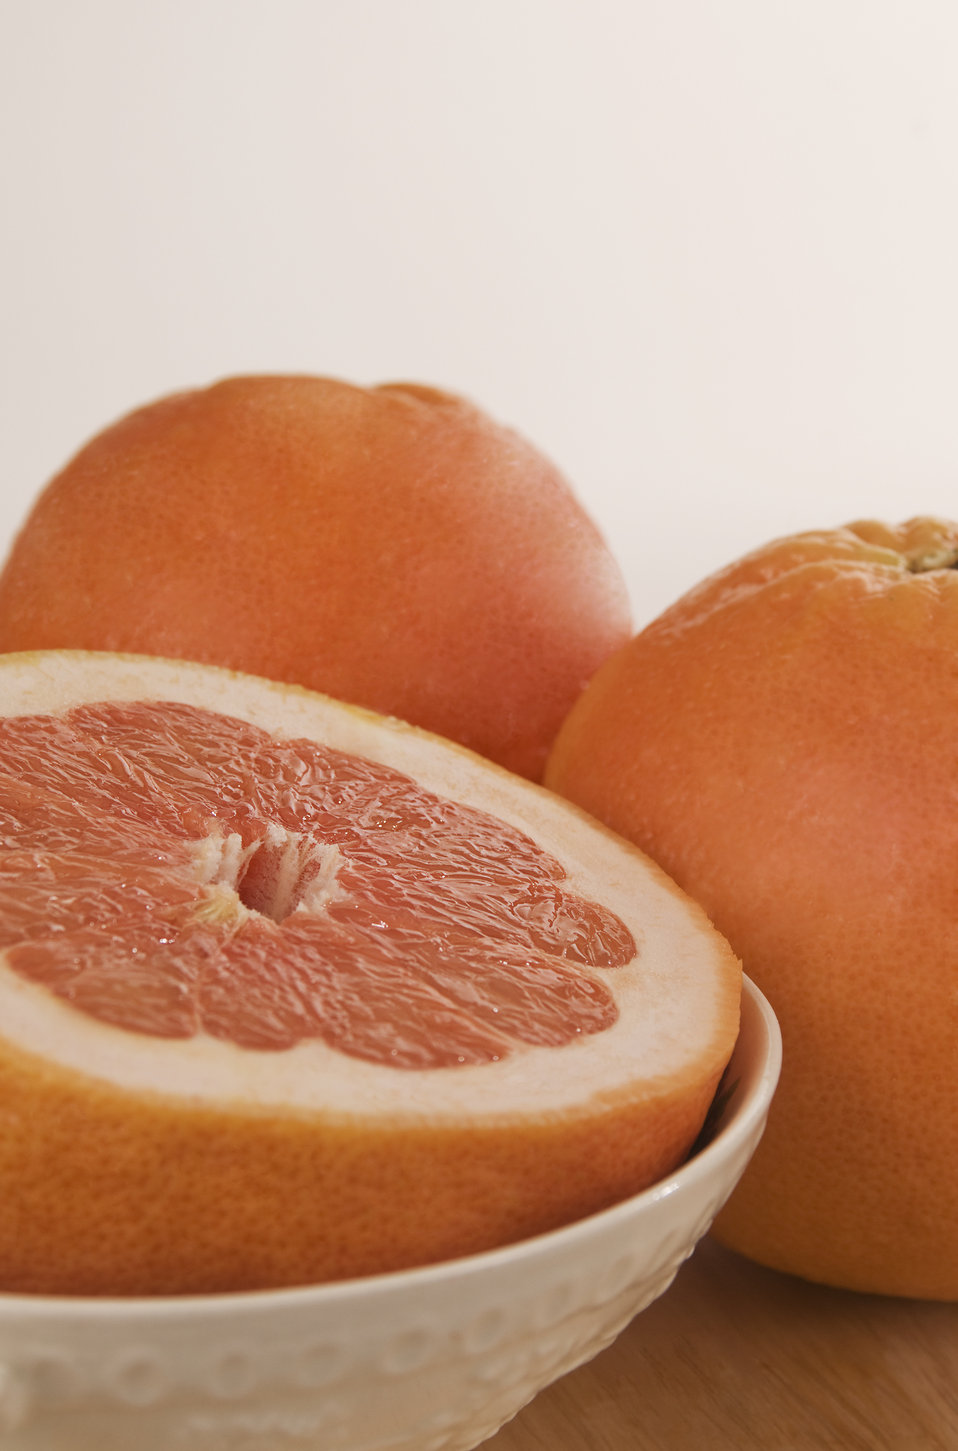 This image depicts a clean wooden tabletop, atop which two whole grapefruit, and a white ceramic bowl containing a half of one of these frui